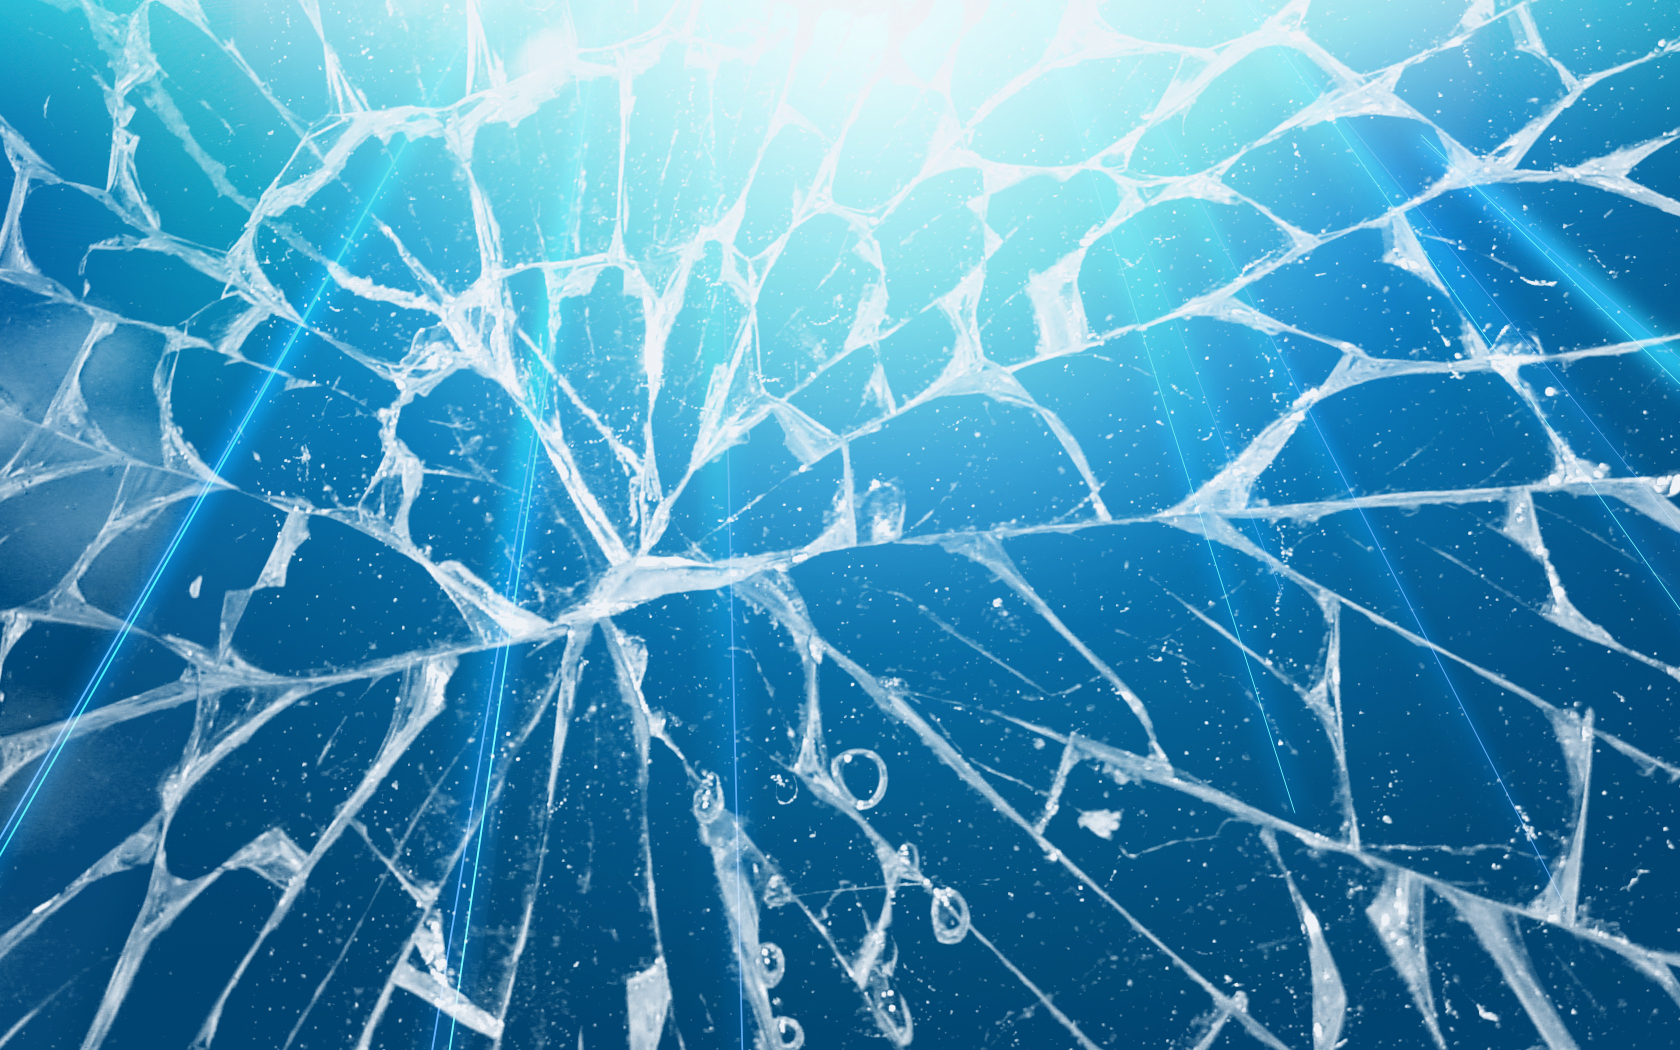 45 Realistic Cracked And Broken Screen Wallpapers Technosamrat 1680x1050